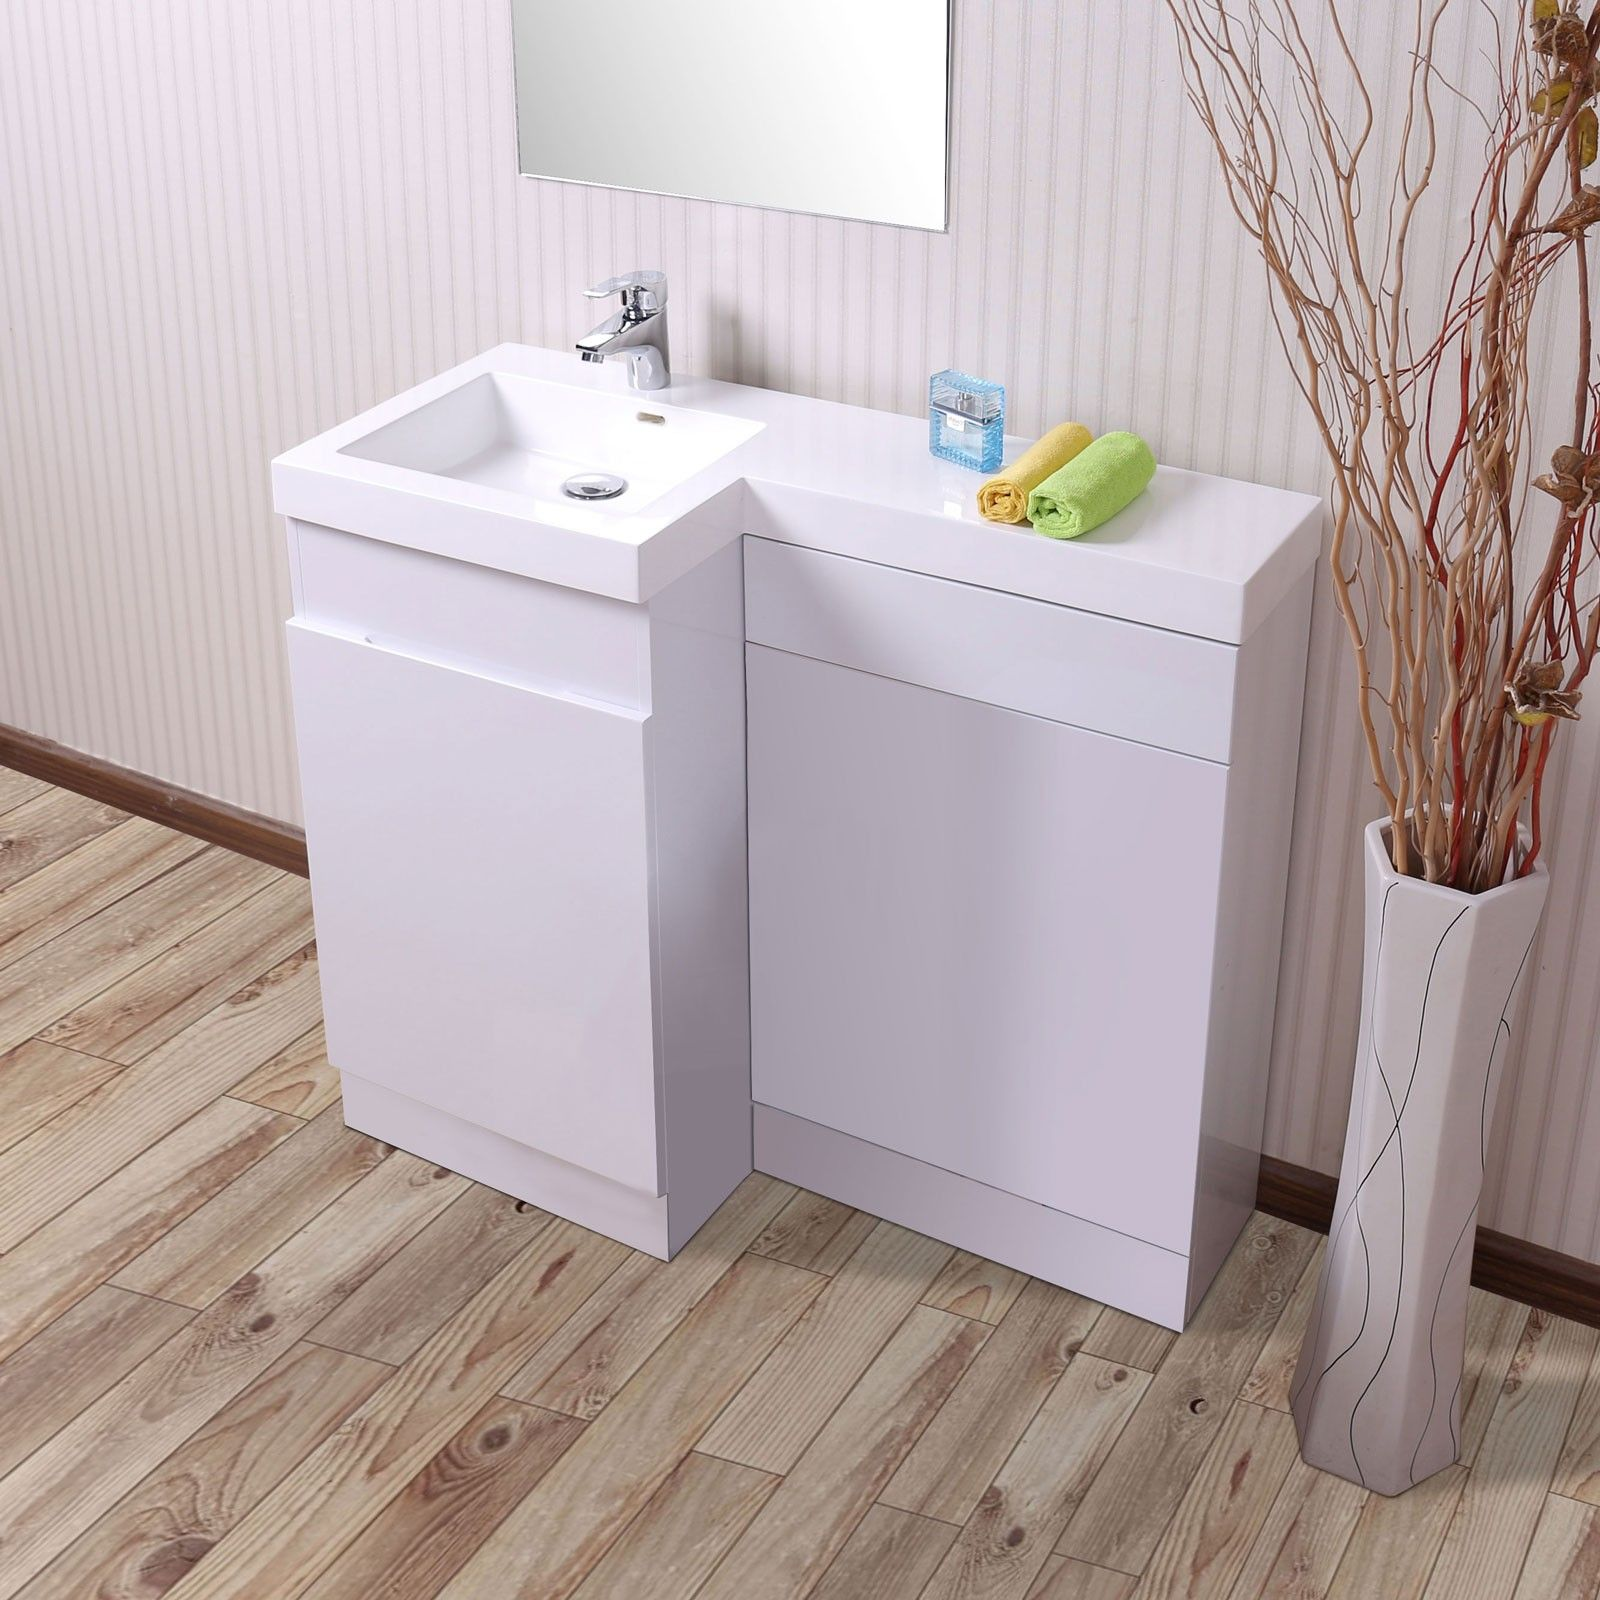 Aston 1000mm white lh bathroom white basin combination vanity unit vanity units basin and for Bathroom combination vanity units